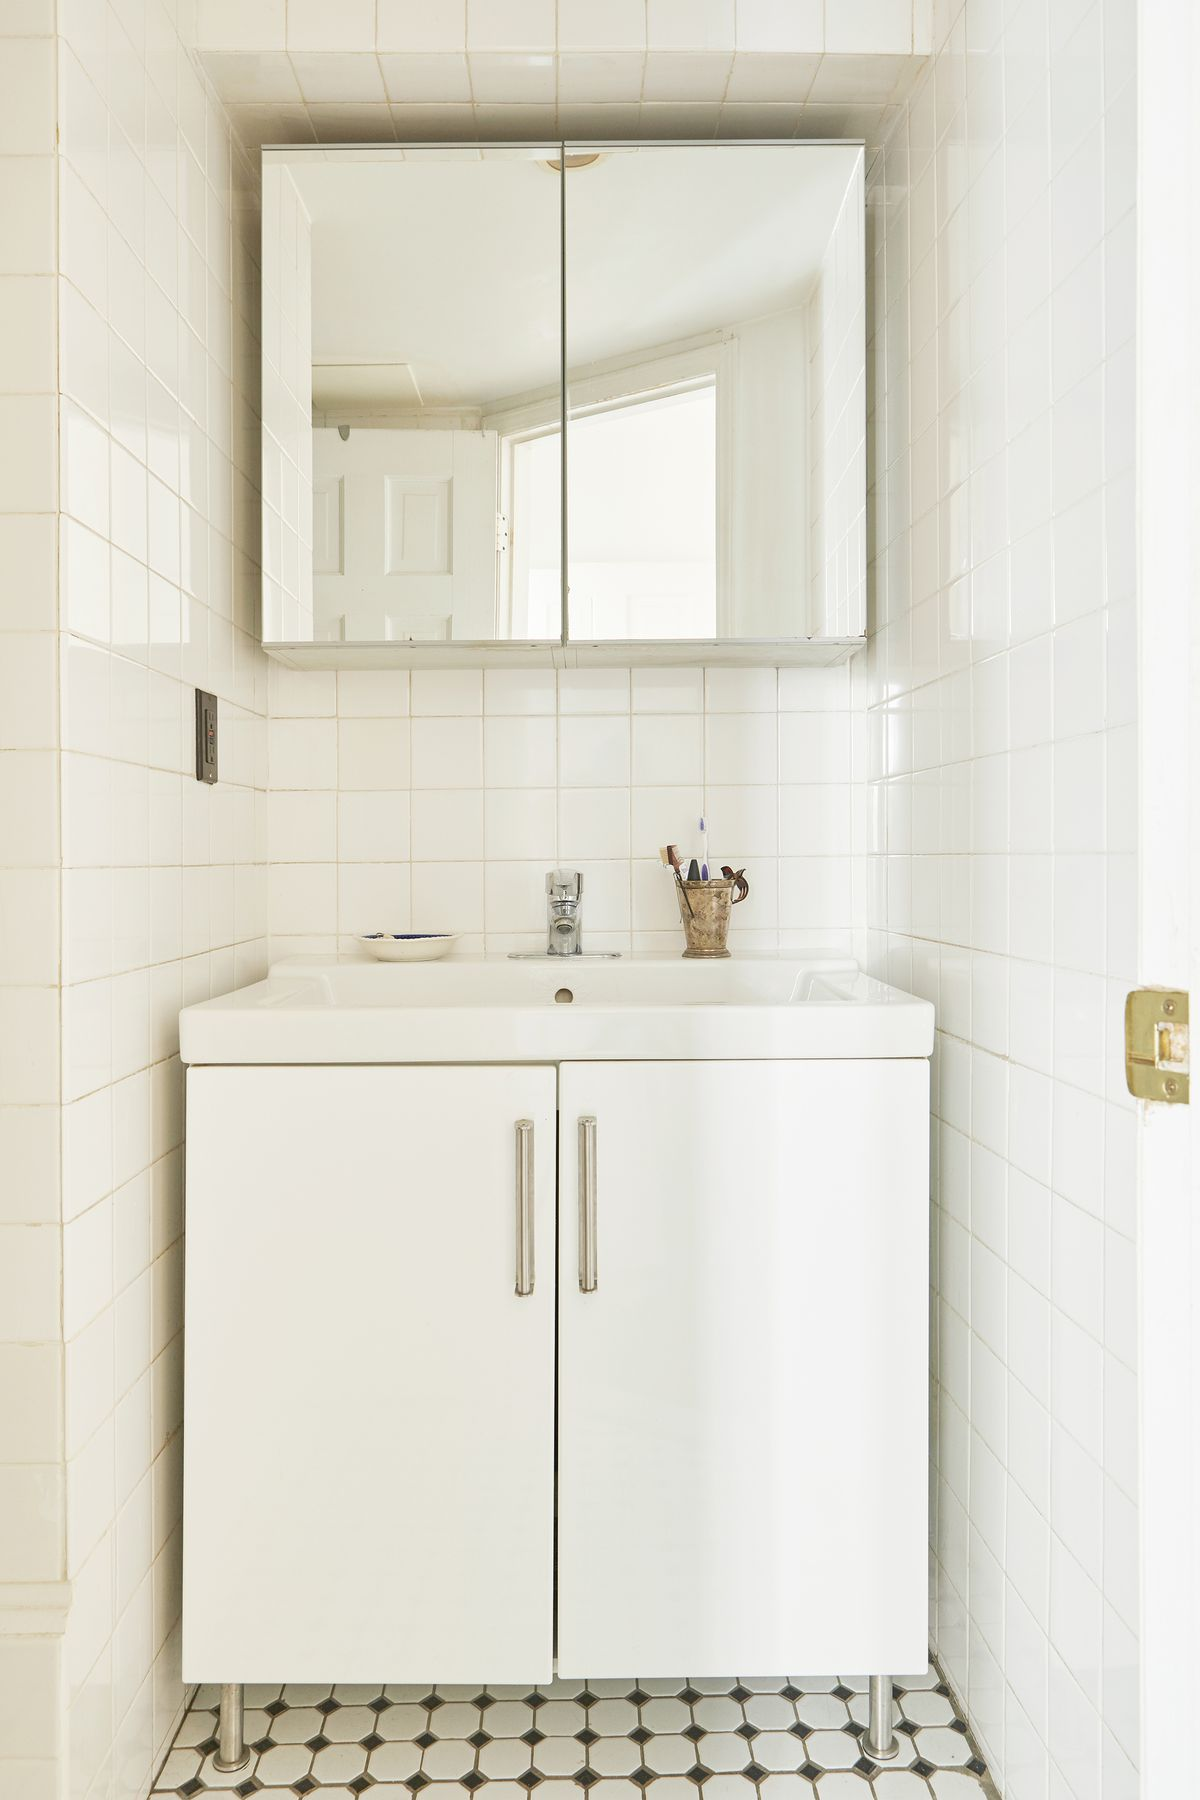 A mirrored bathroom cabinet hangs over a white sink.